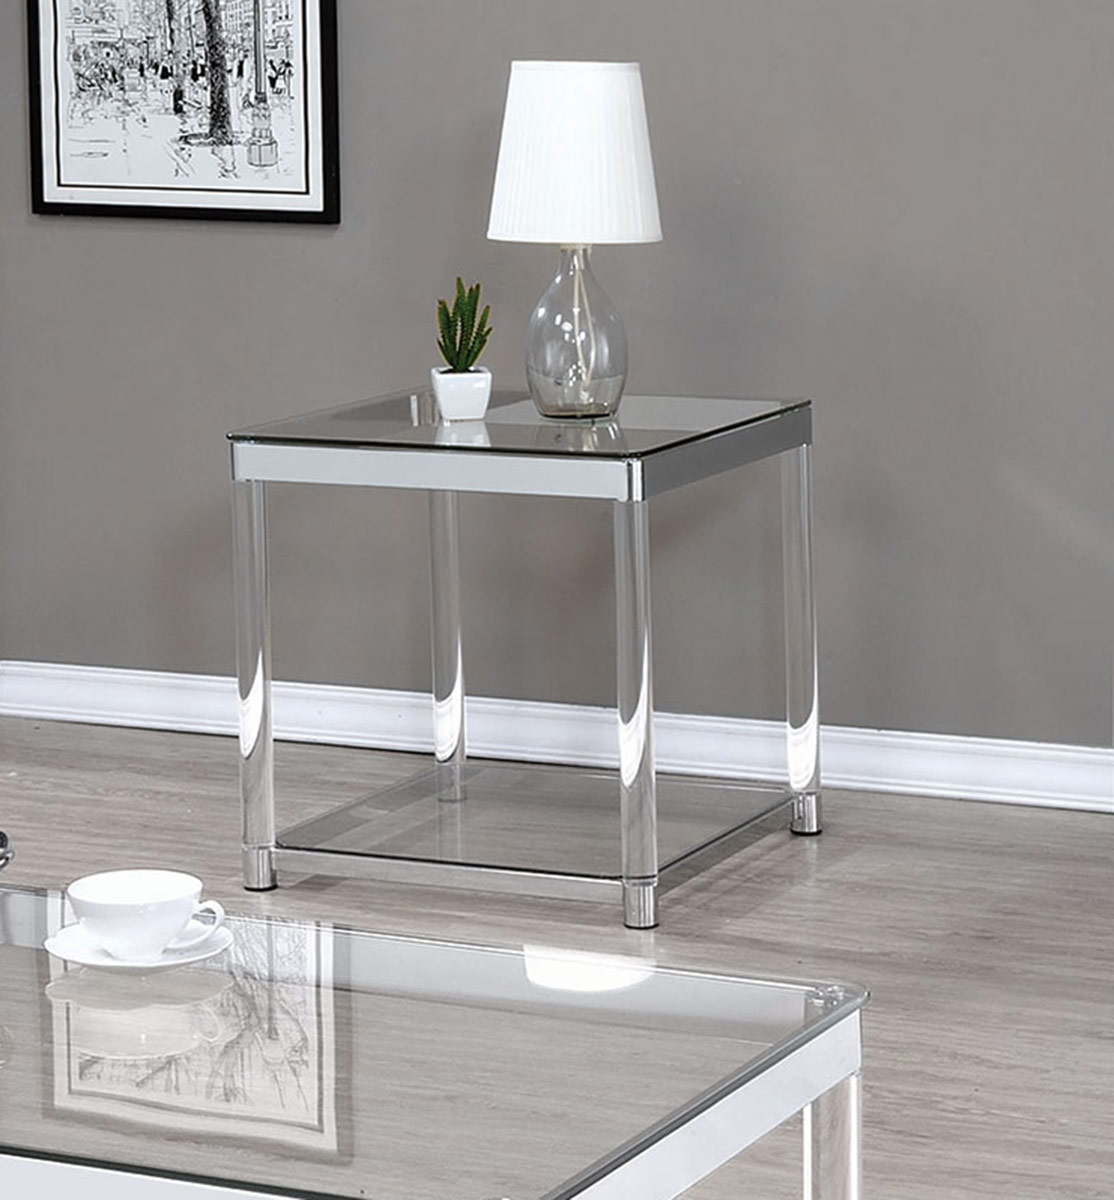 Coaster 720747 End Table - Chrome/Clear Acrylic